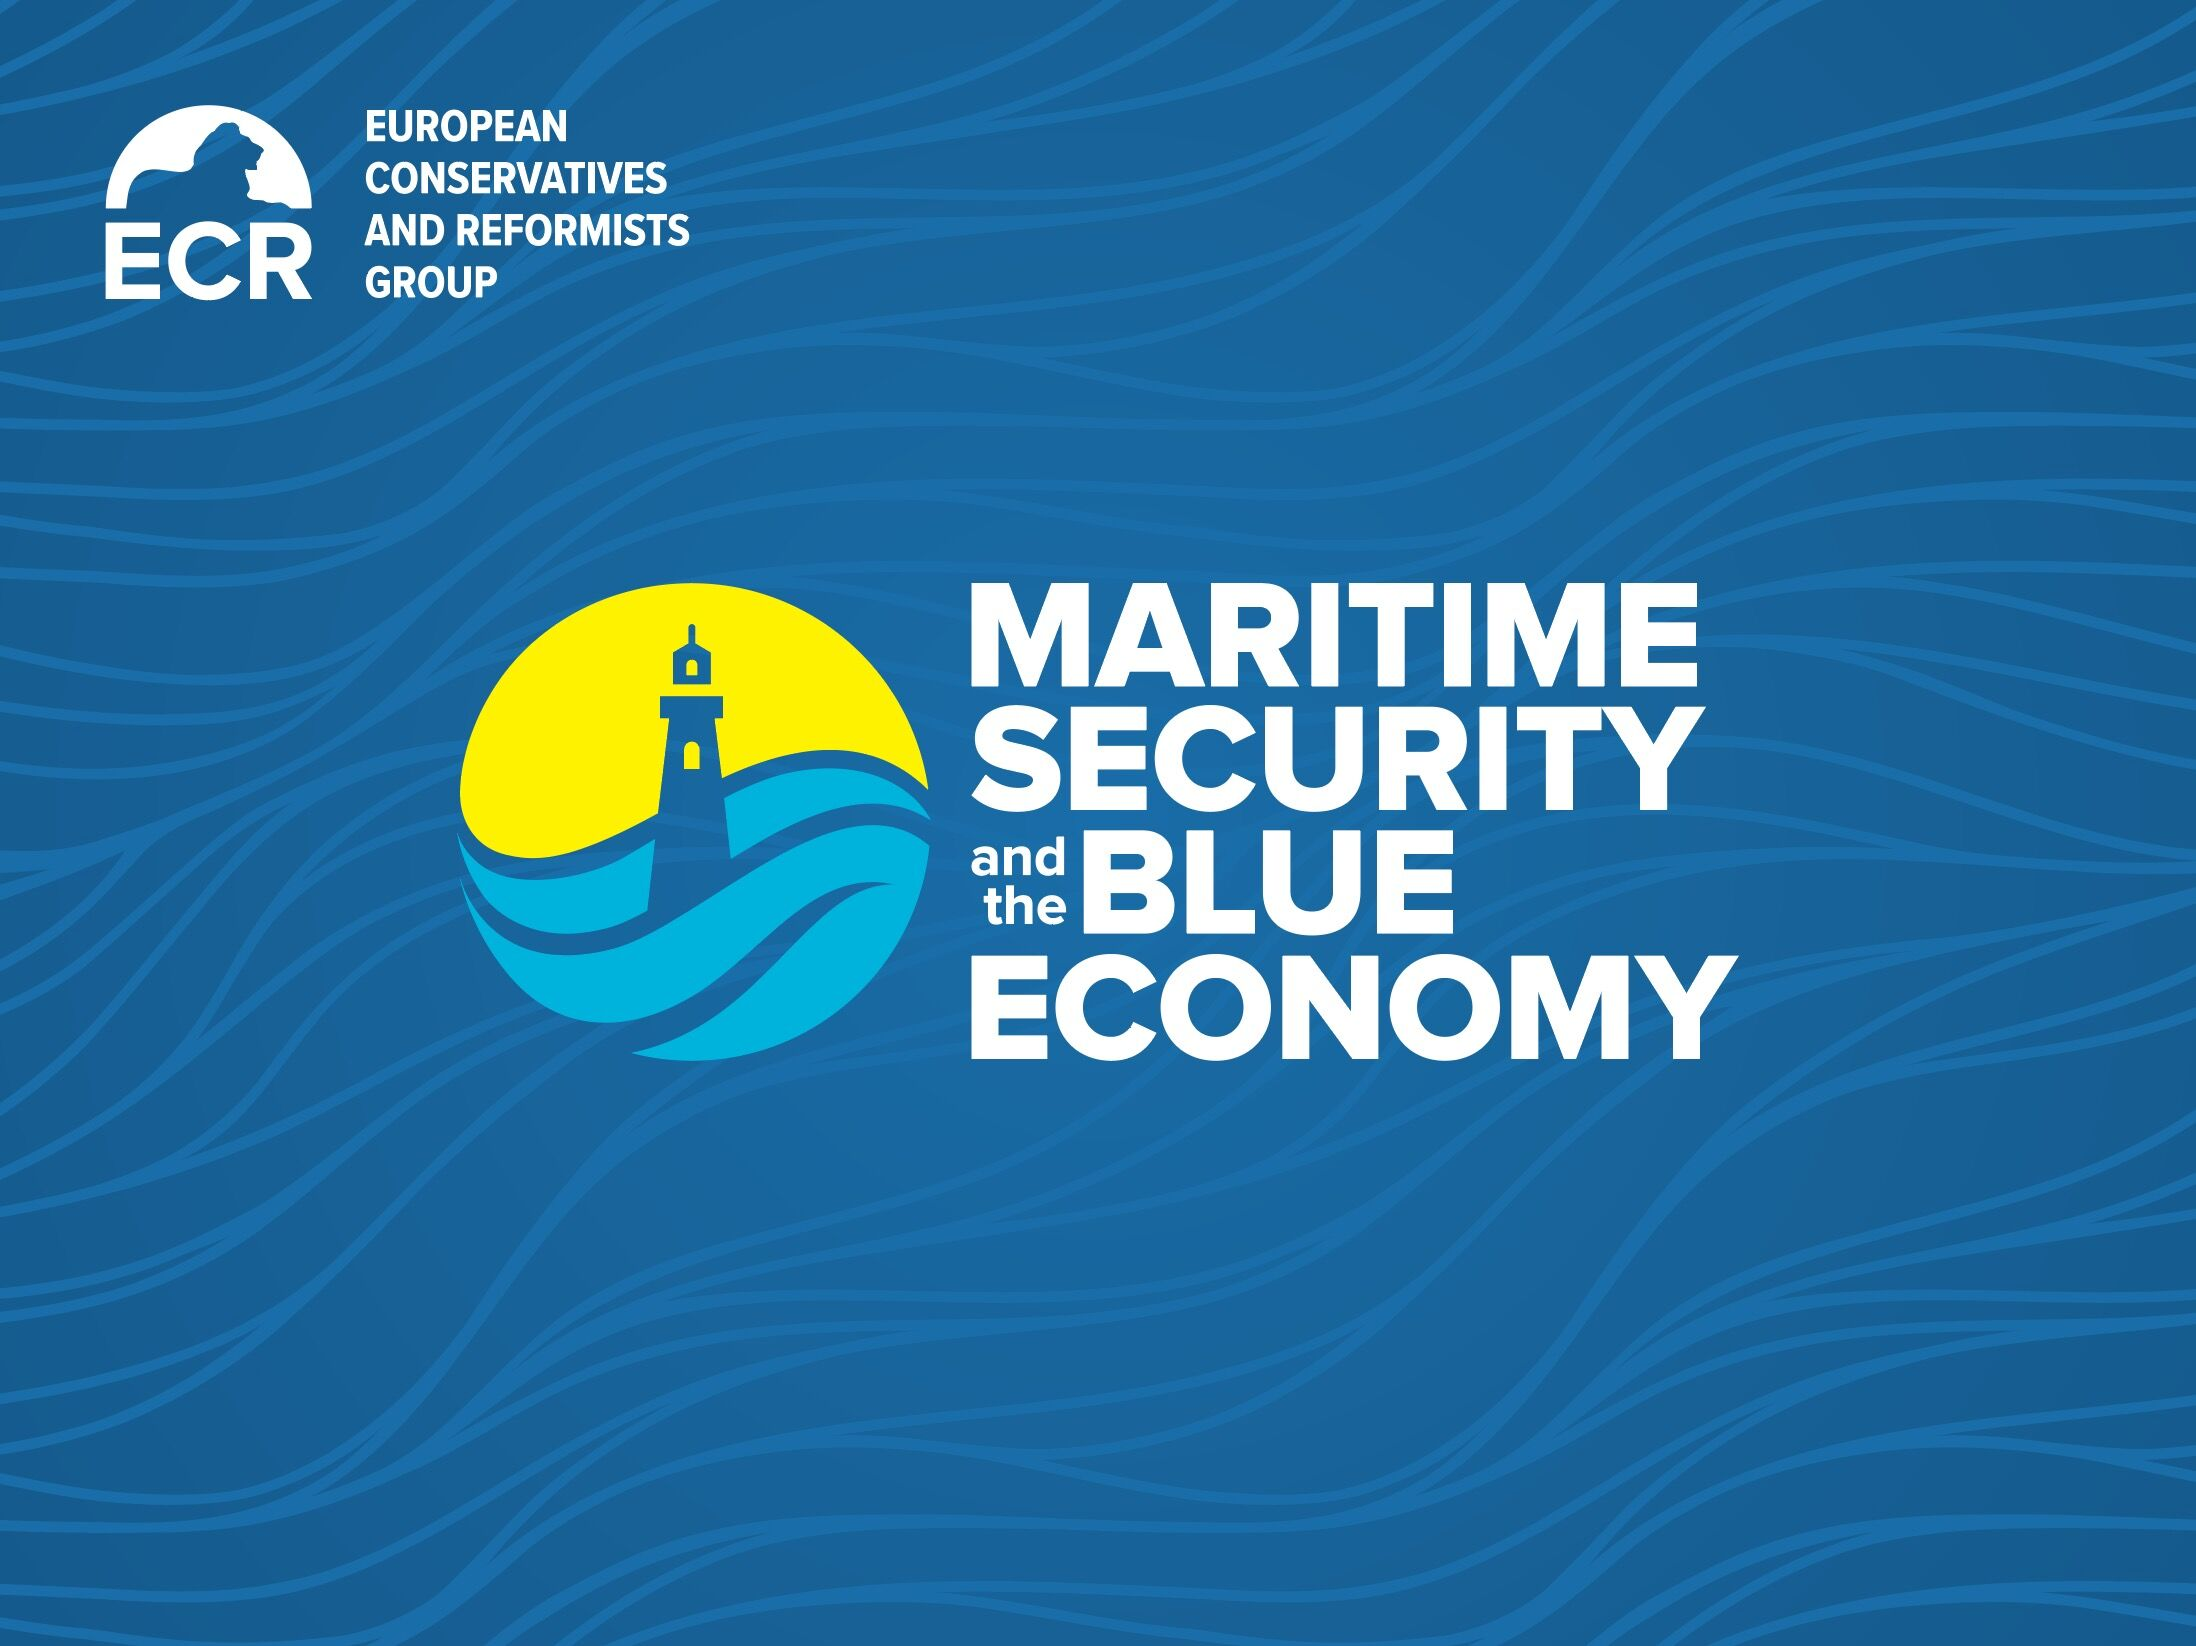 Maritime Security and the Blue Economy